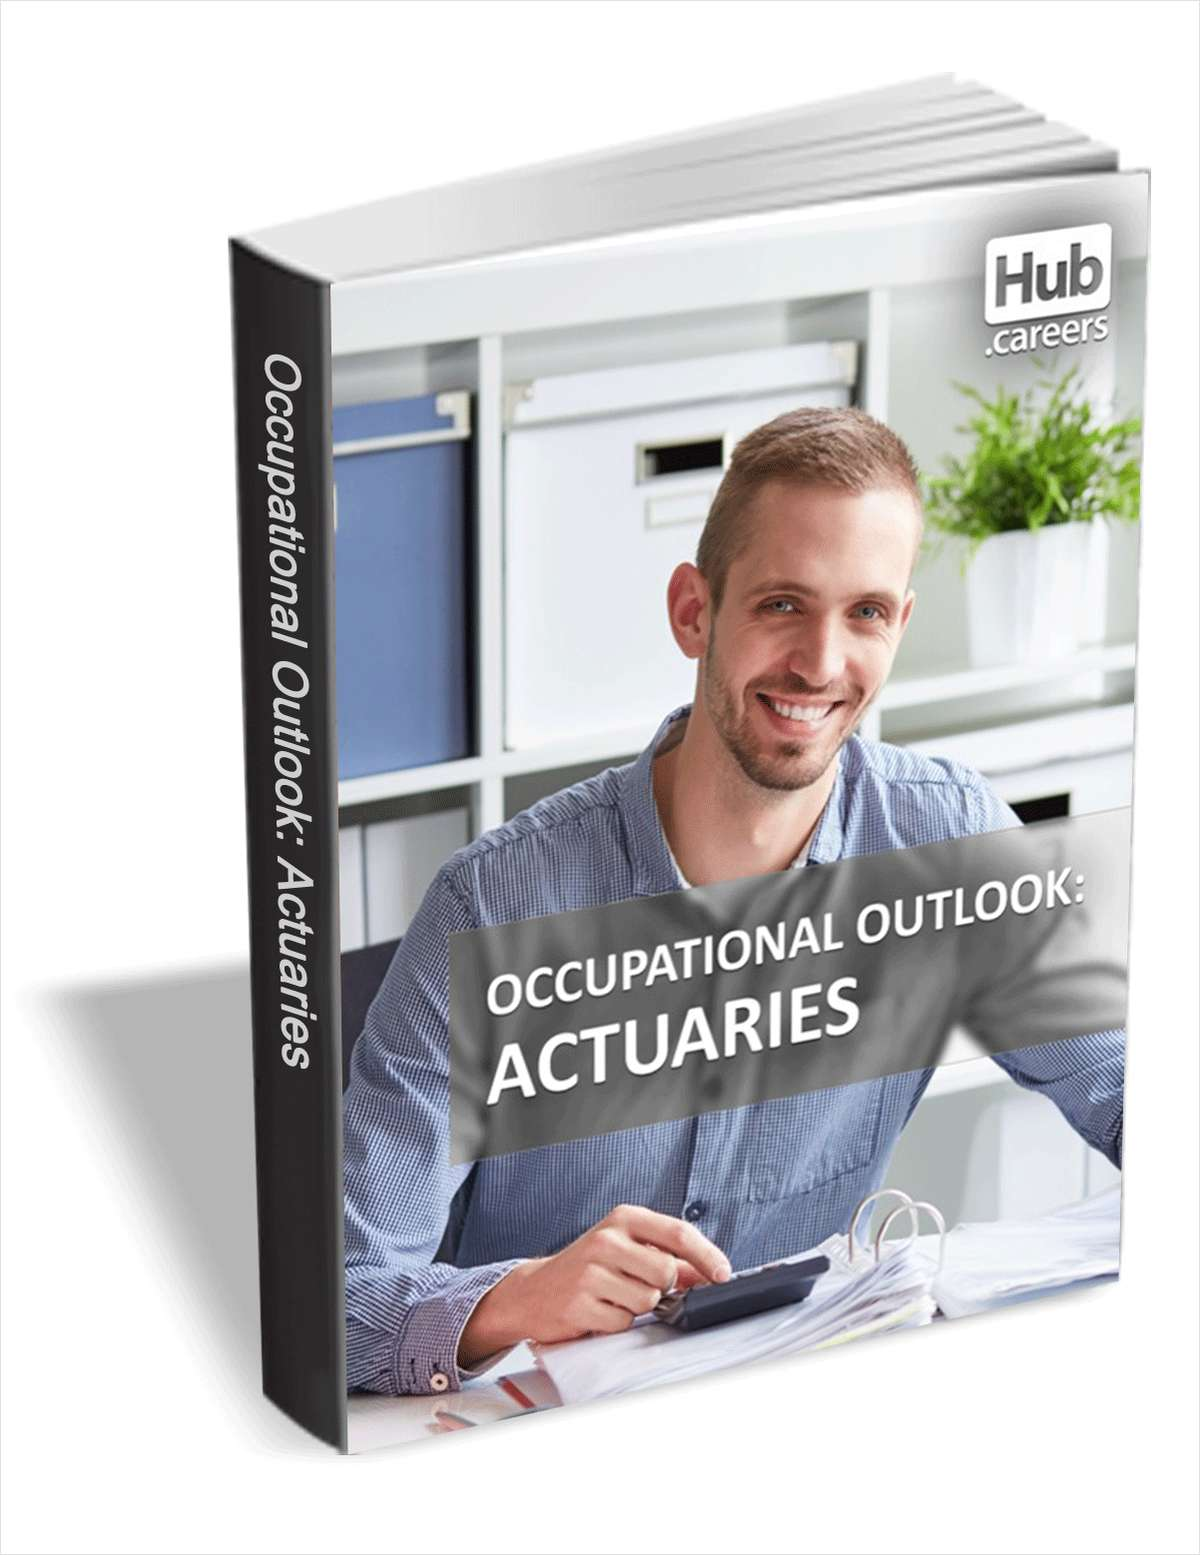 Actuaries - Occupational Outlook